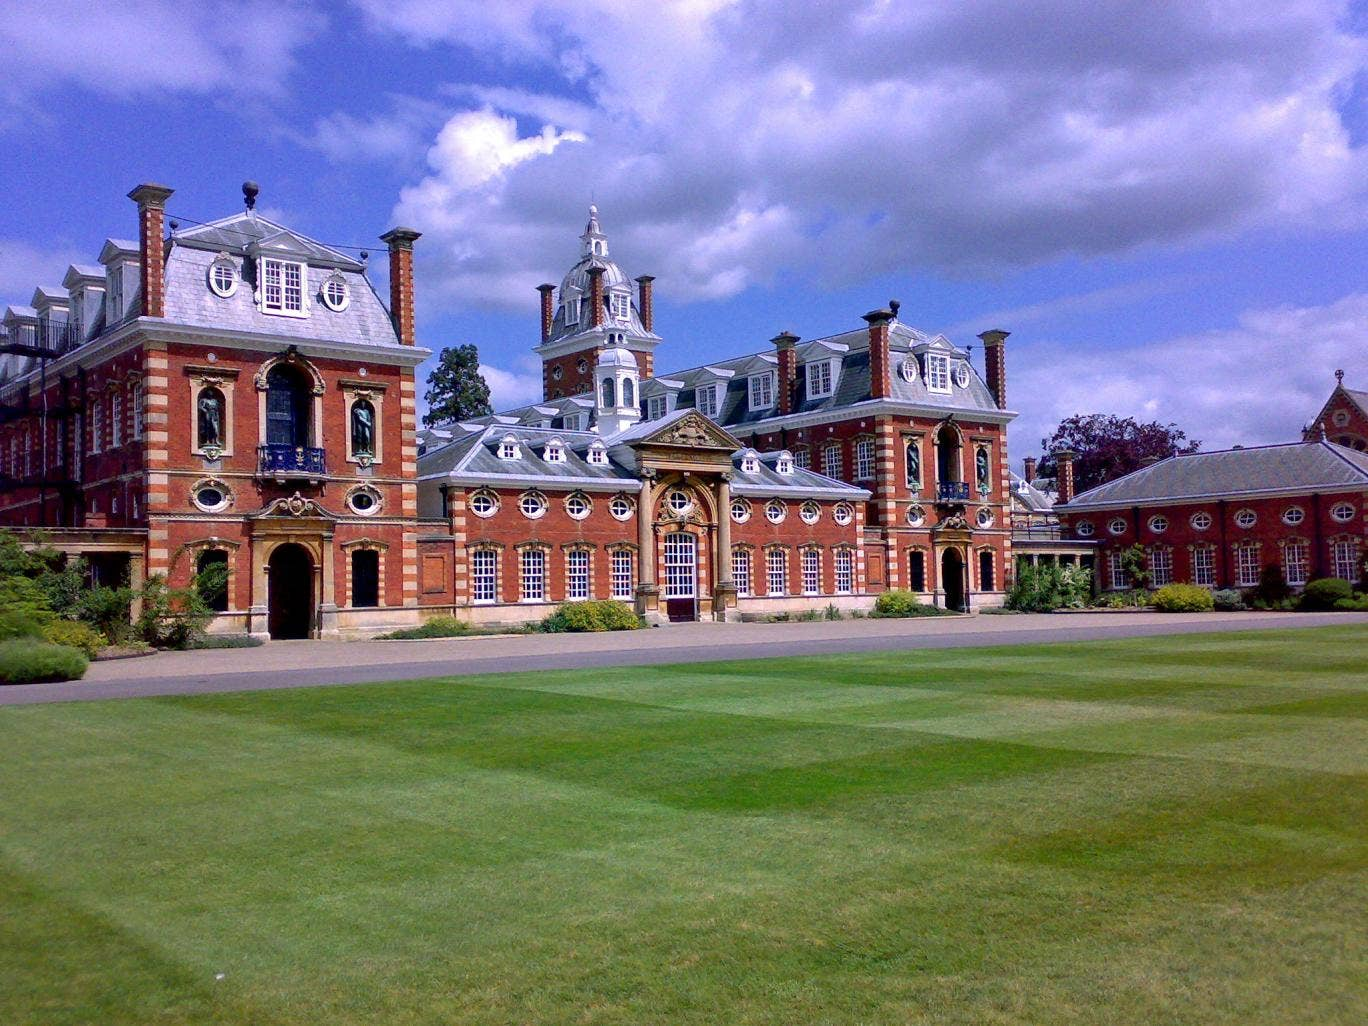 The headmaster of Wellington College (pictured), Dr Anthony Seldon, has called for a set of radical proposals to close the gap between state and independent schools